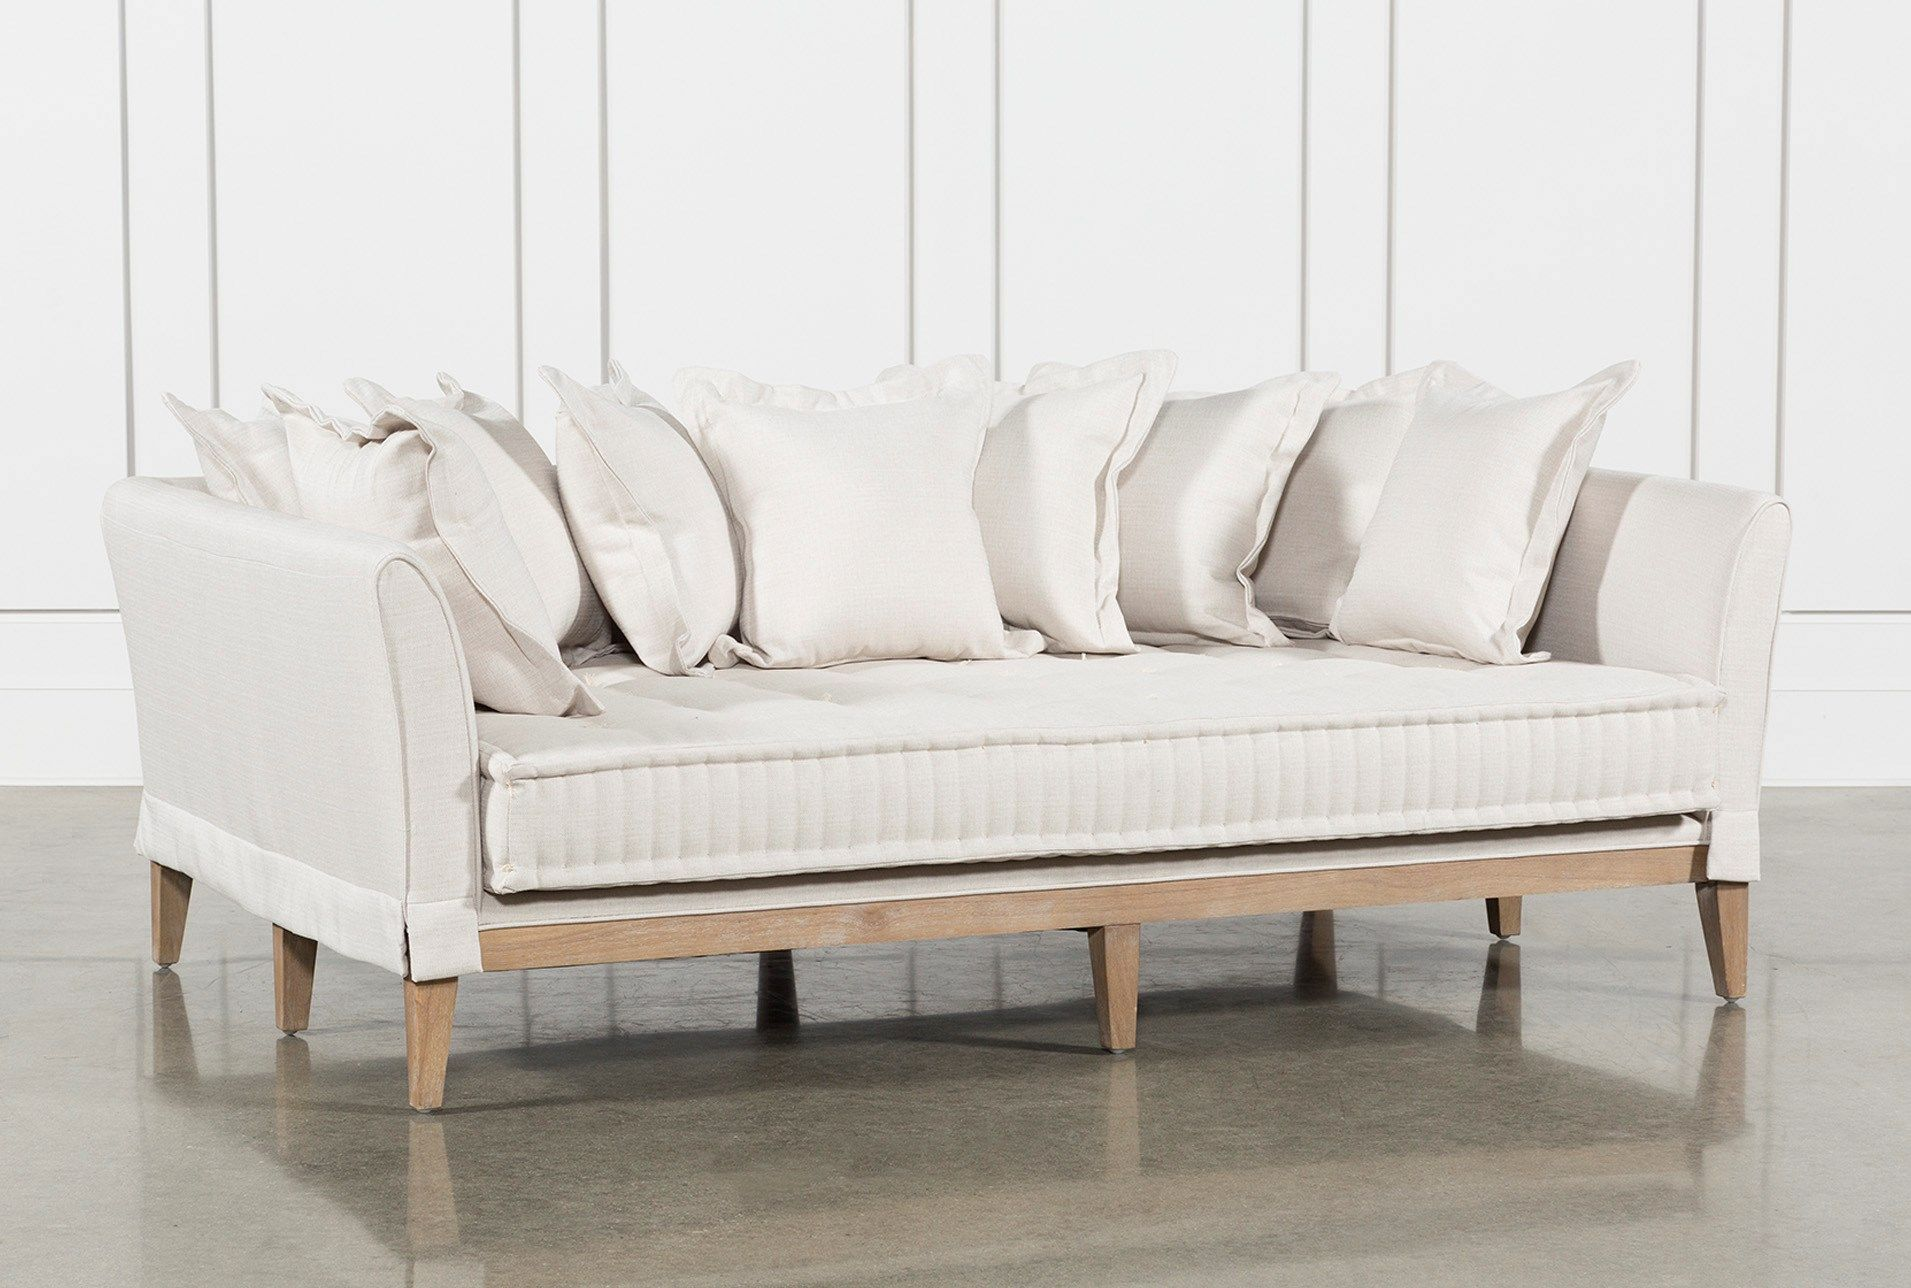 I Also Love This Sofabut The Color Will Not Work